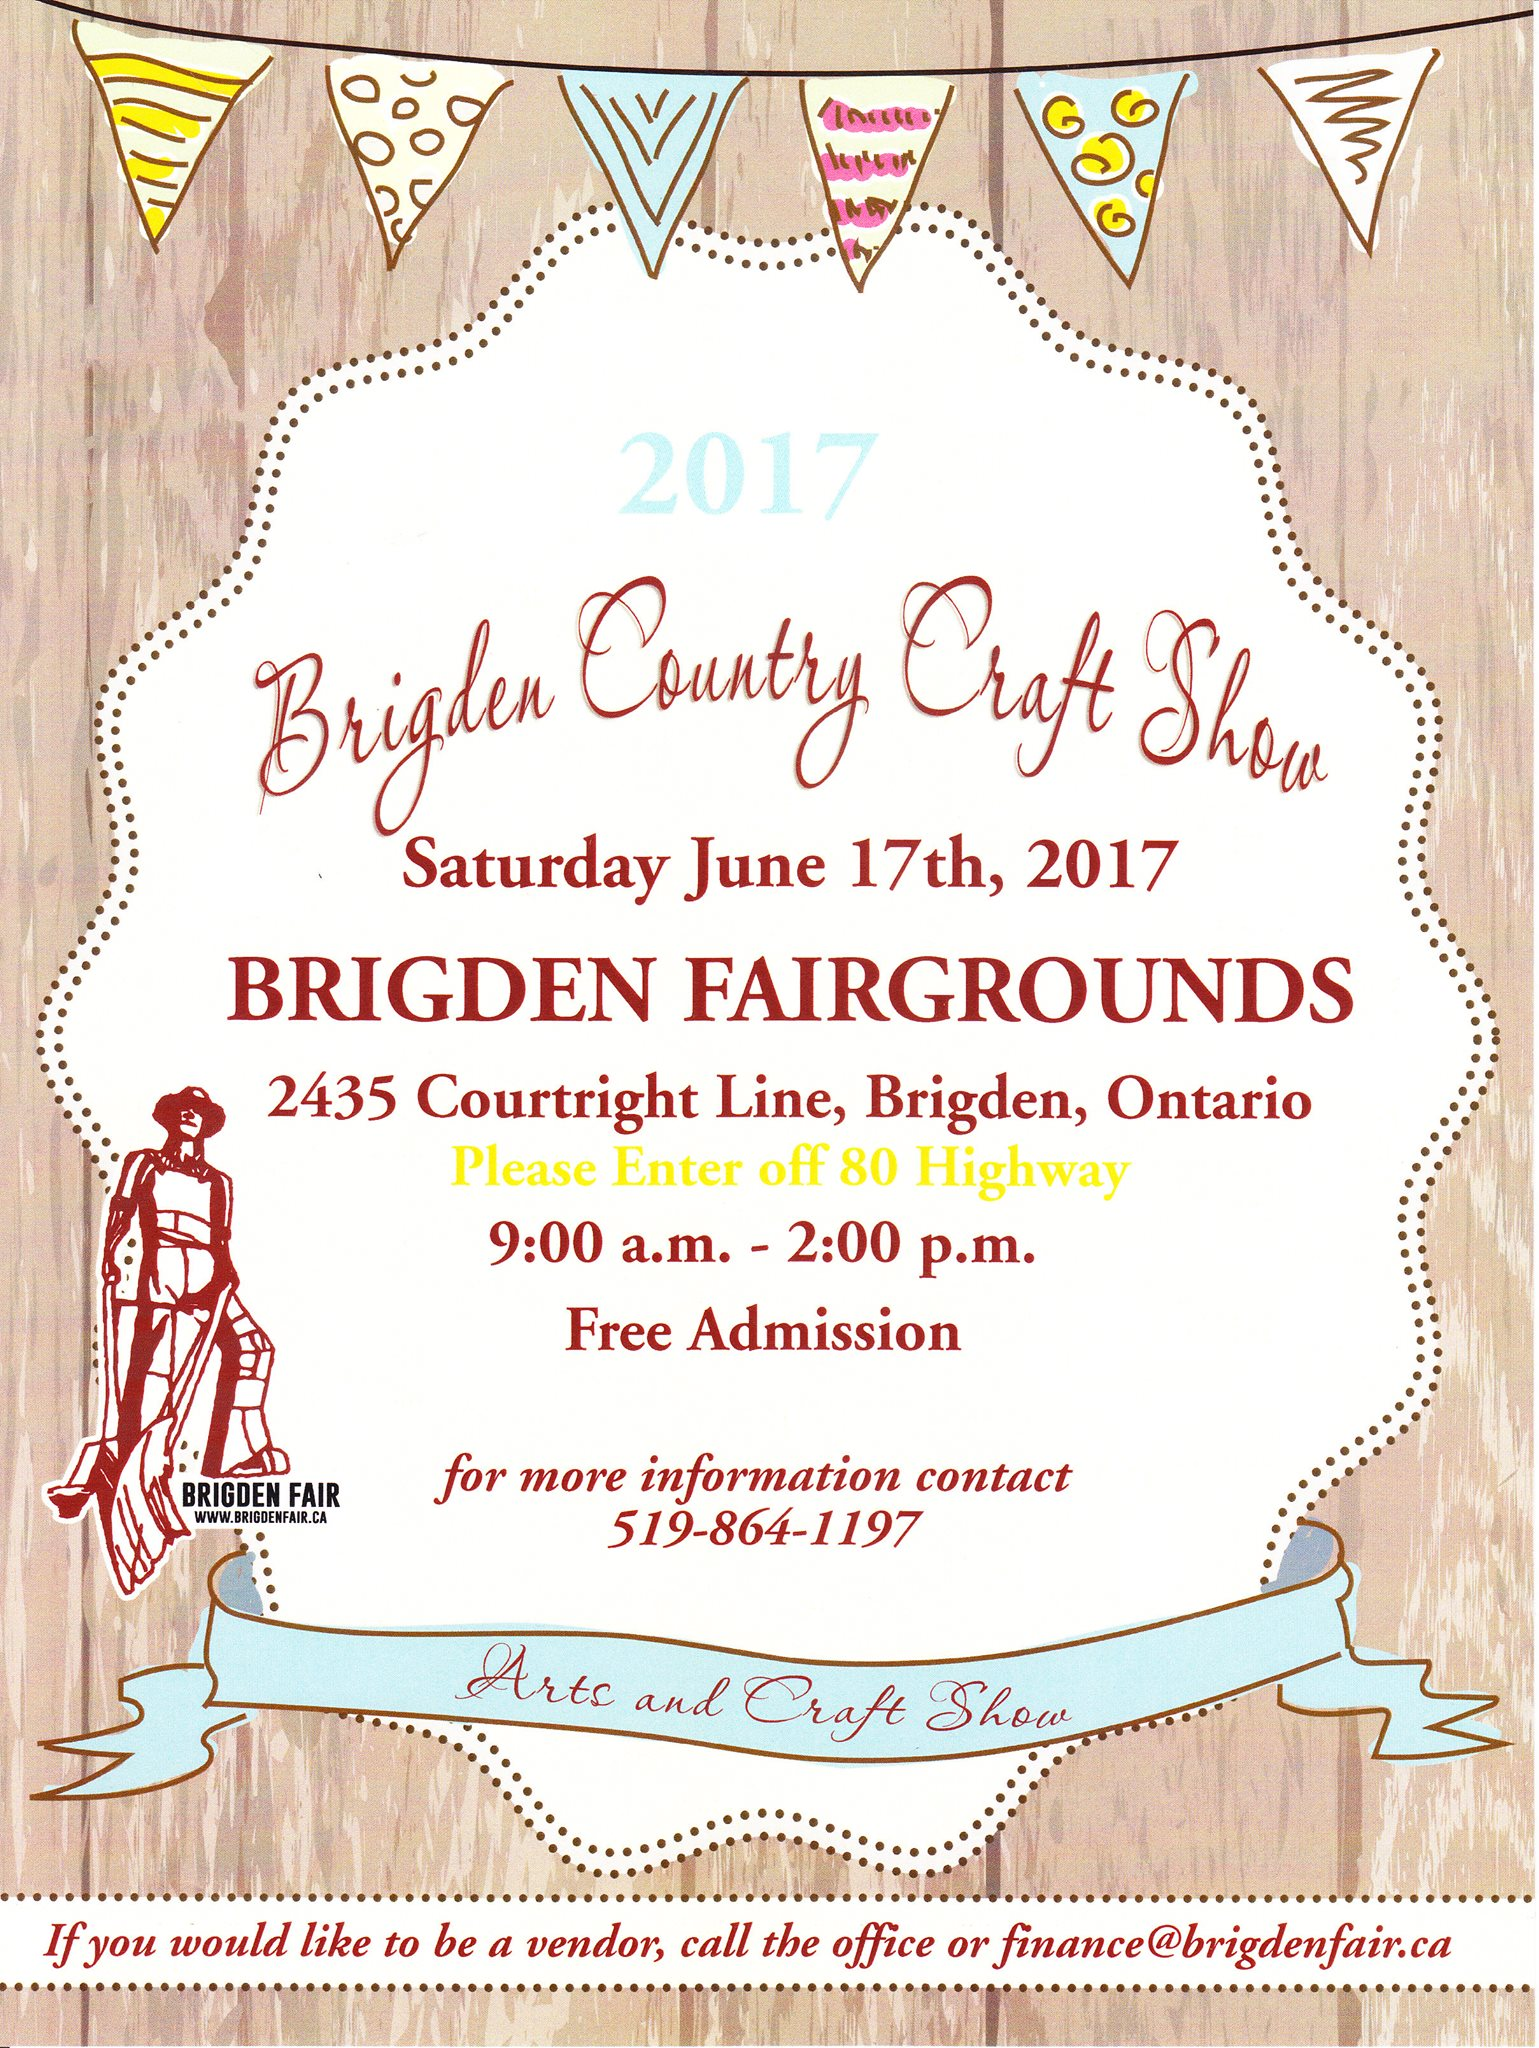 Brigden Country Craft Show 2017